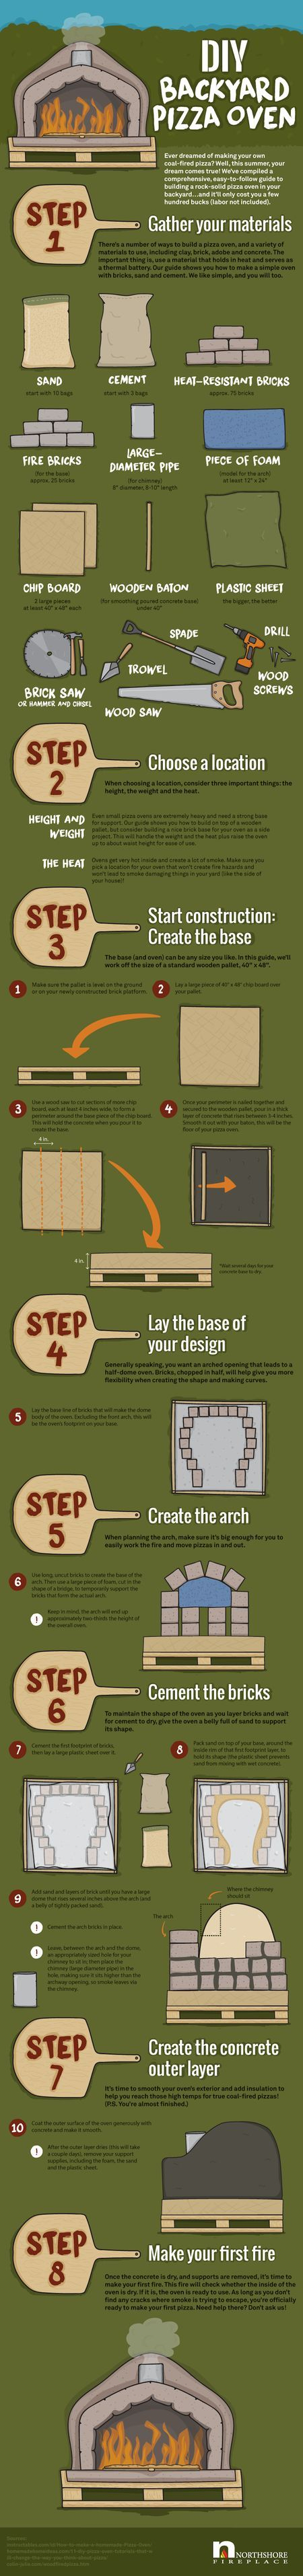 best 25 clay oven ideas on pinterest clay pizza oven pizza